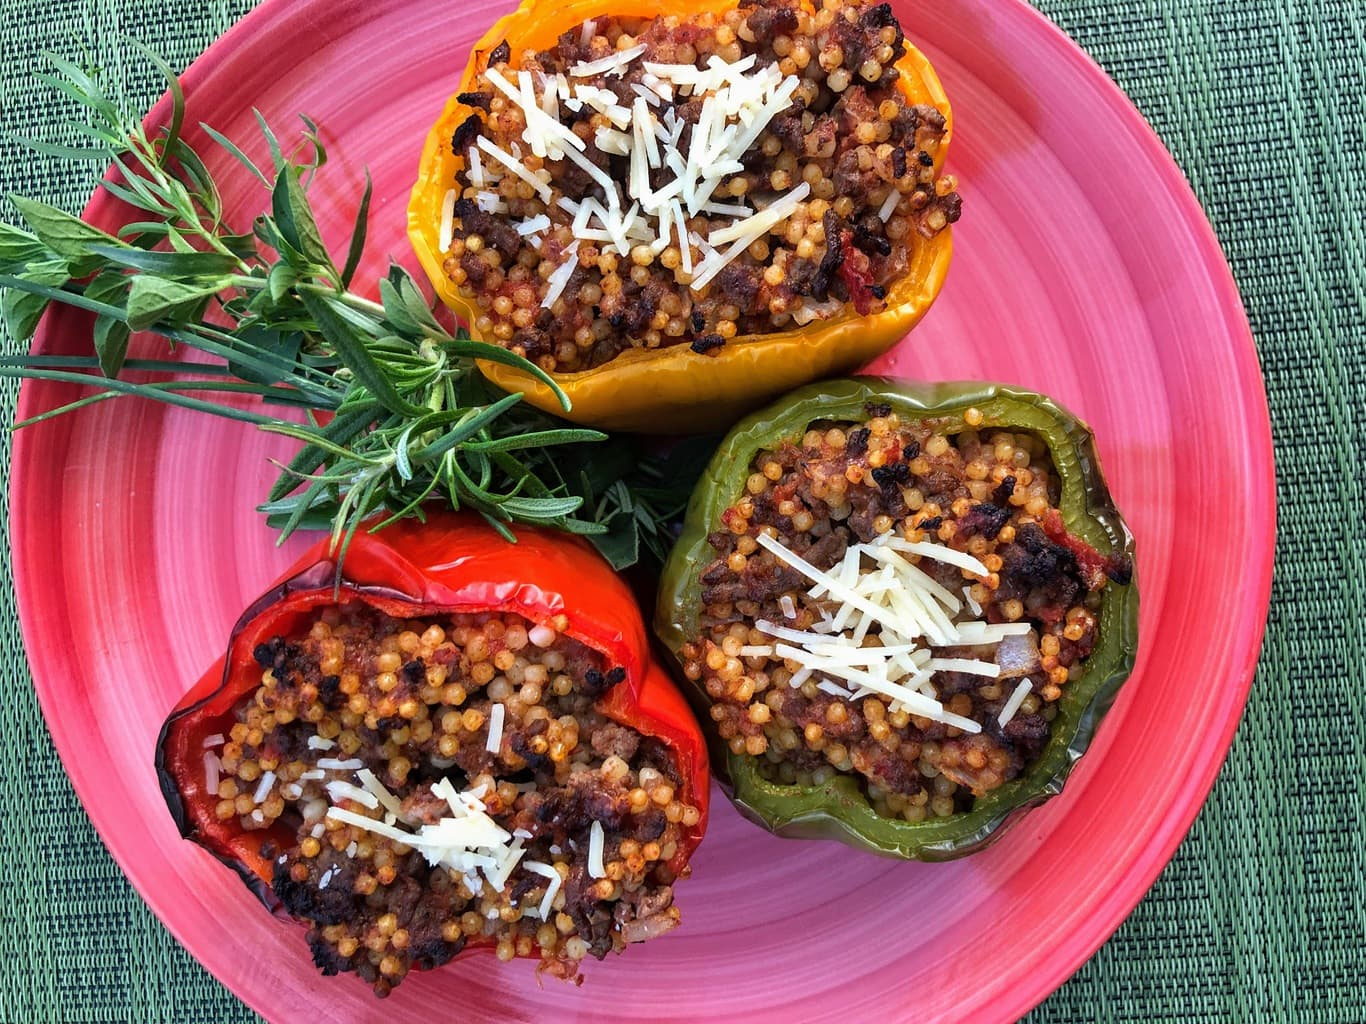 Stuffed Bell Peppers with Beefy, Cheesy Yumminess on pink plate